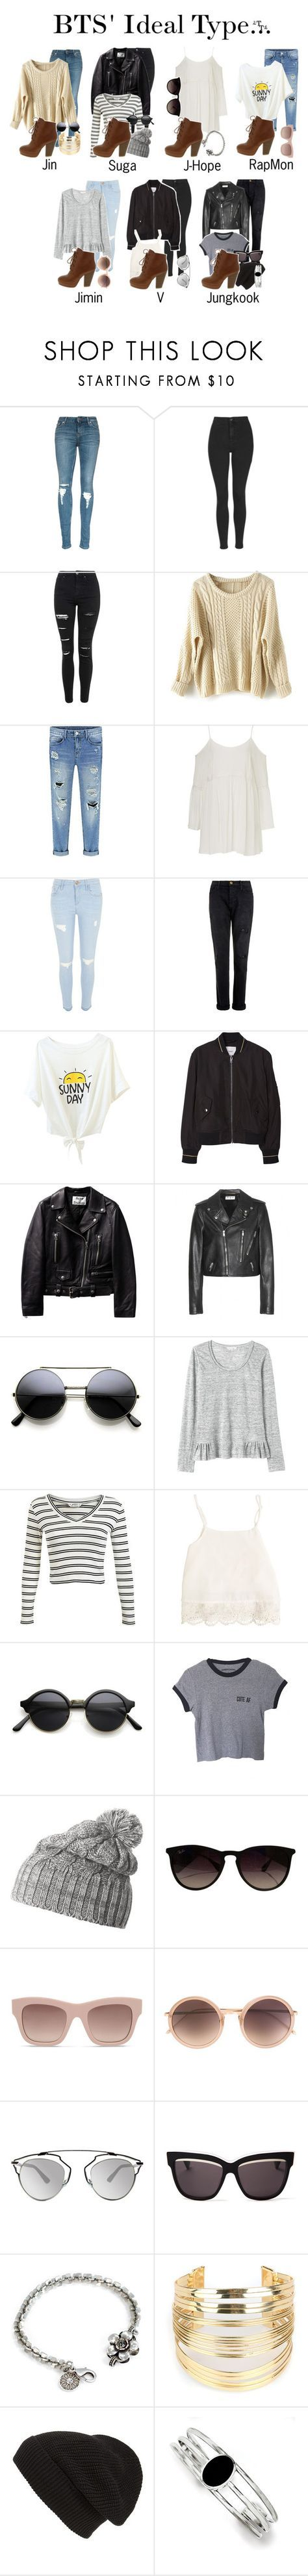 """BTS' ideal type wearing Whiskey Lace Up Ankle Boots"" by triple-threat36 ❤ liked on Polyvore featuring Topshop, River Island, Current/Elliott, MANGO, Yves Saint Laurent, Rebecca Taylor, Miss Selfridge, Swell, Helly Hansen and Ray-Ban"